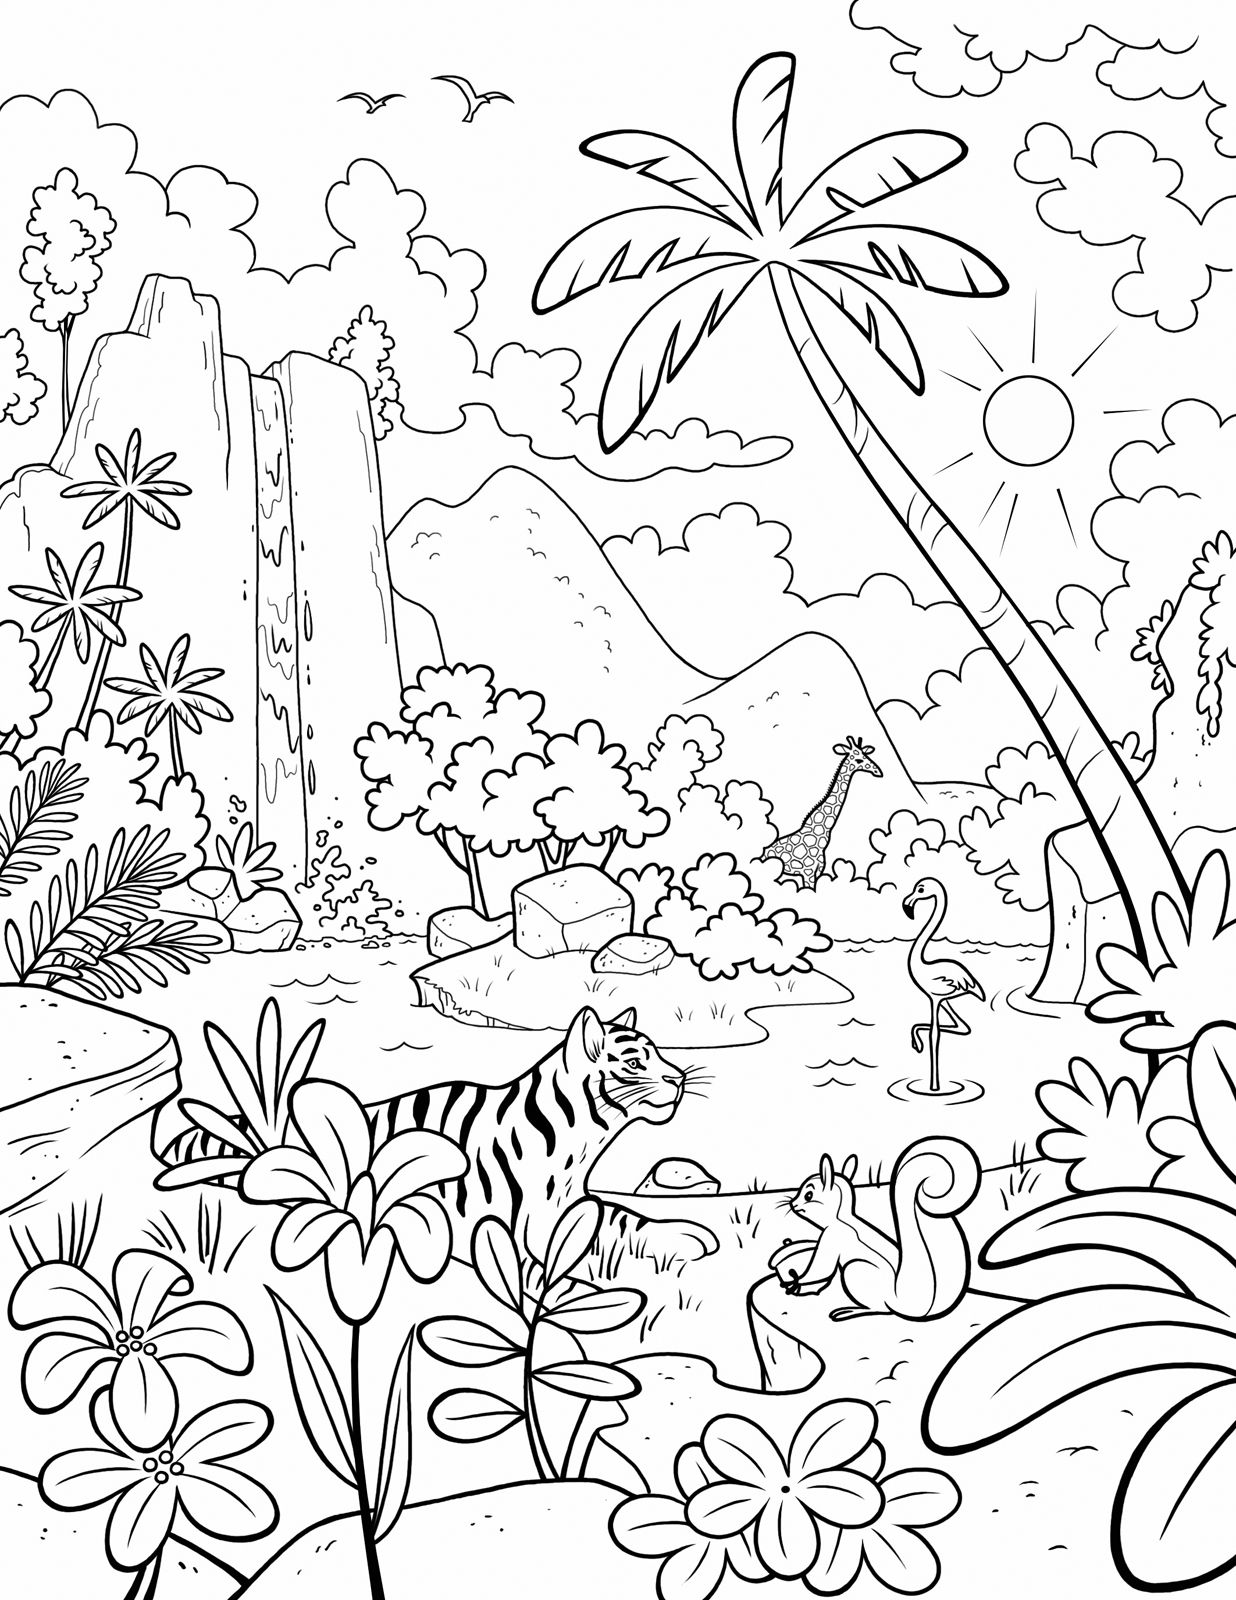 Our beautiful world A LDS Primary coloring page from lds